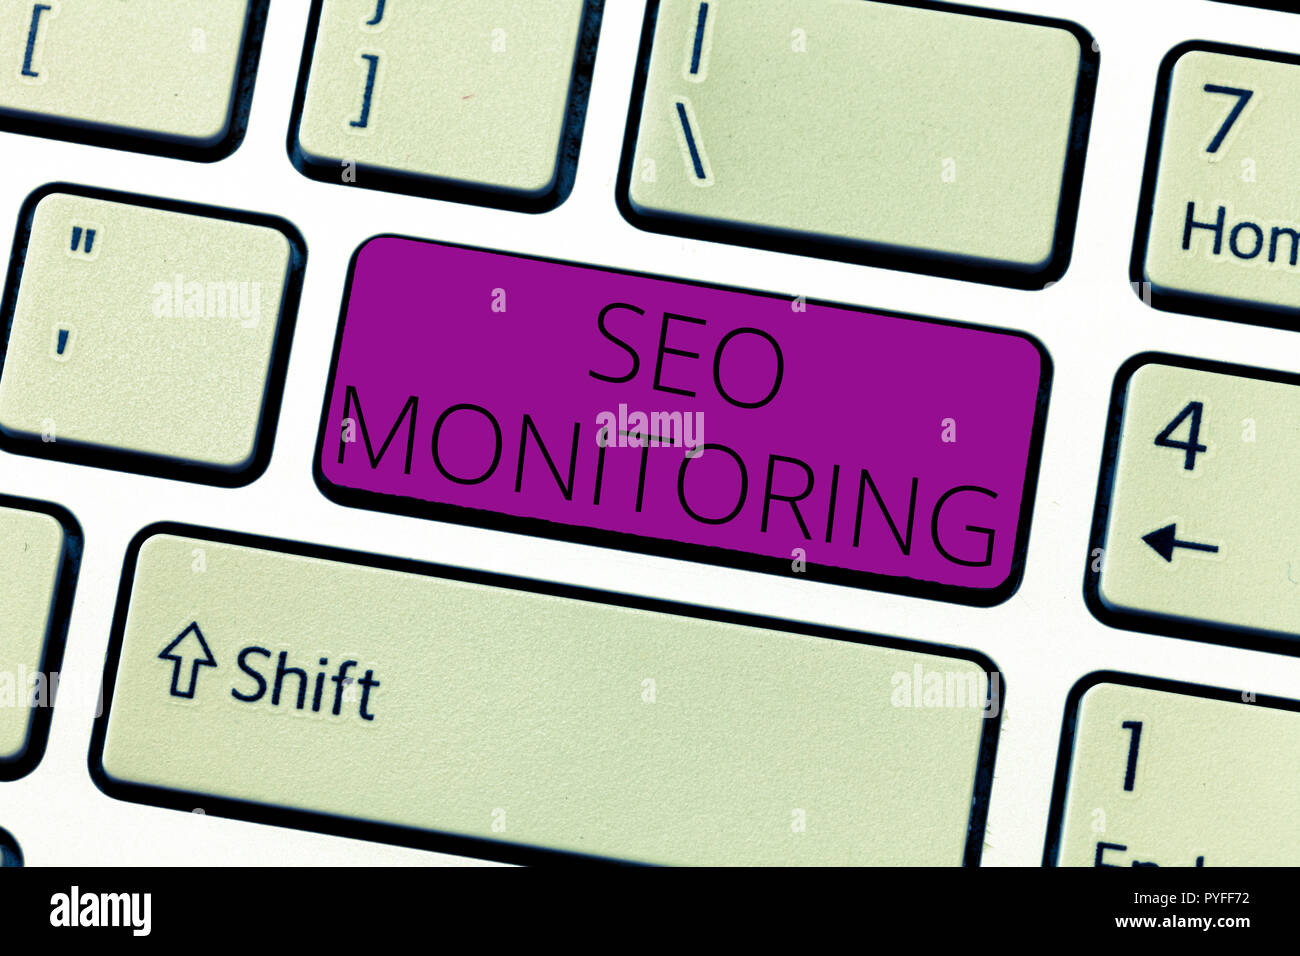 Text sign showing Seo Monitoring. Conceptual photo Tracking the progress of strategy made in the platform. Stock Photo